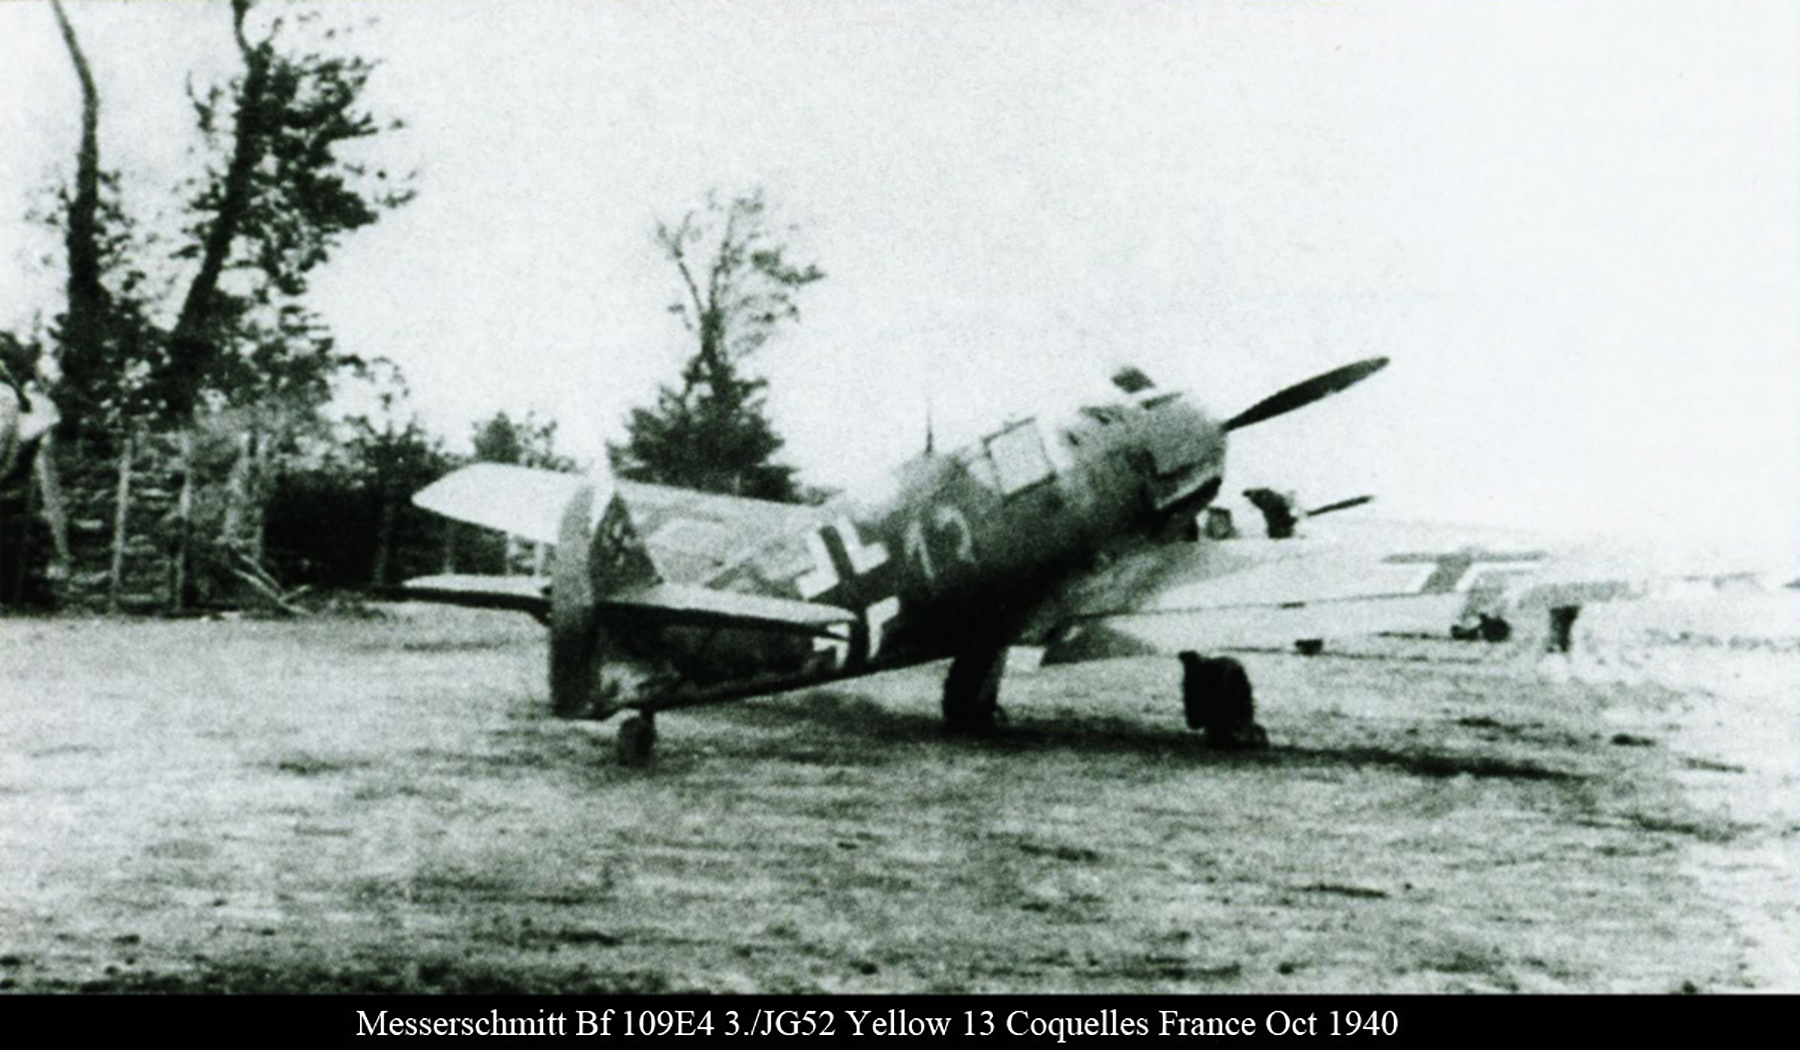 Messerschmitt Bf 109E4 3.JG52 Yellow 13 Coquelles France Oct 1940 01